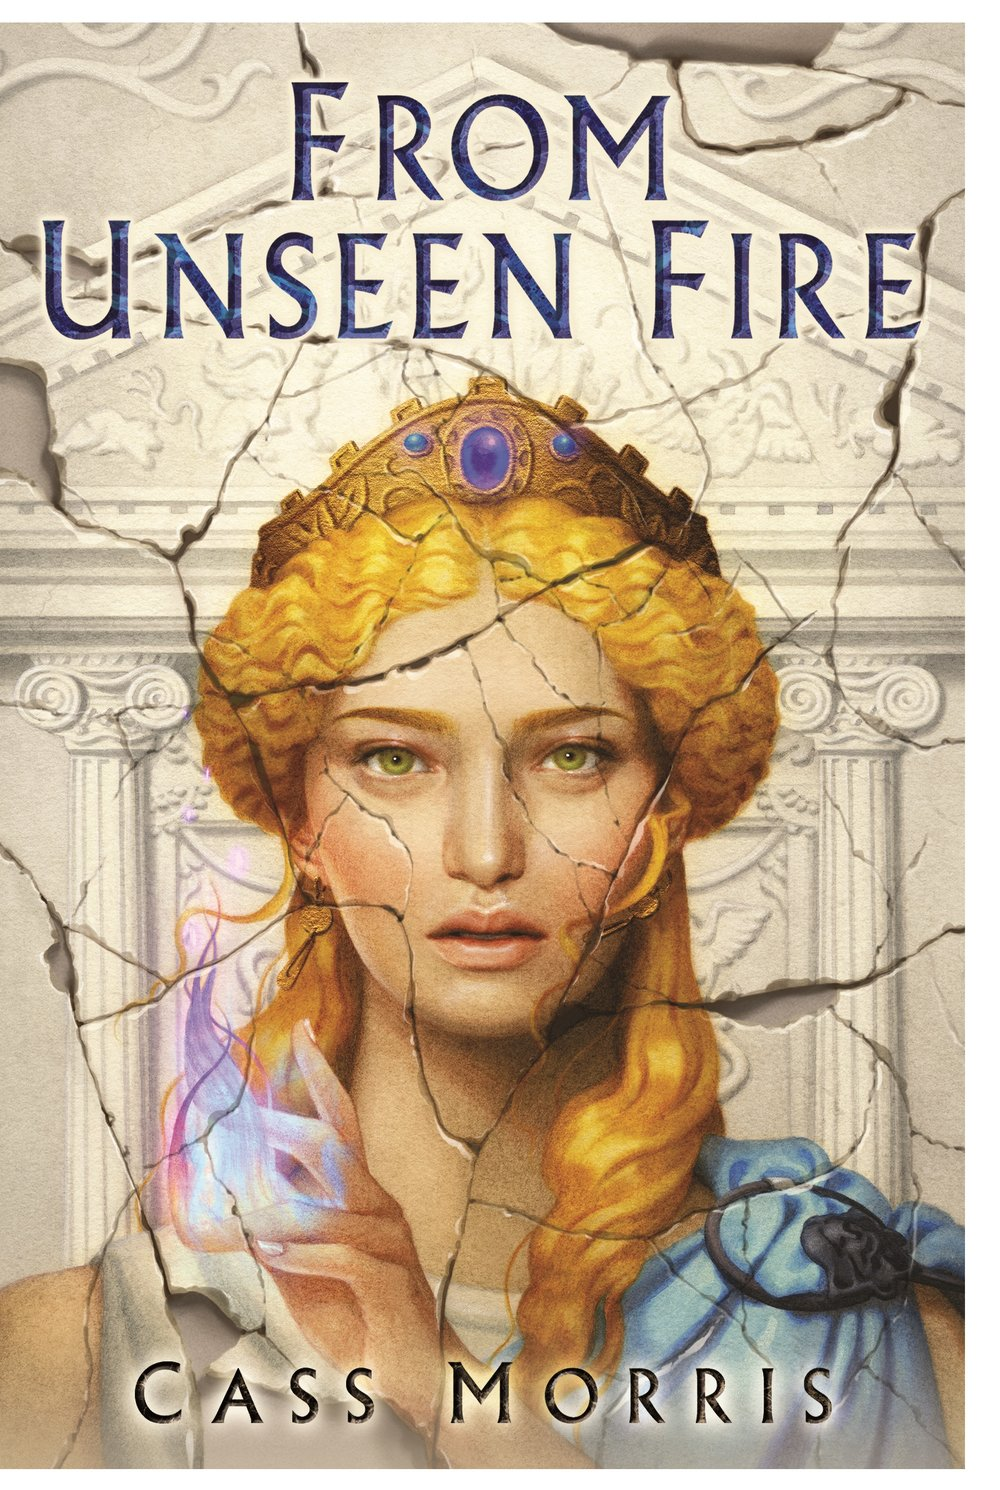 From Unseen Fire (Aven Cycle #1) by Cass Morris